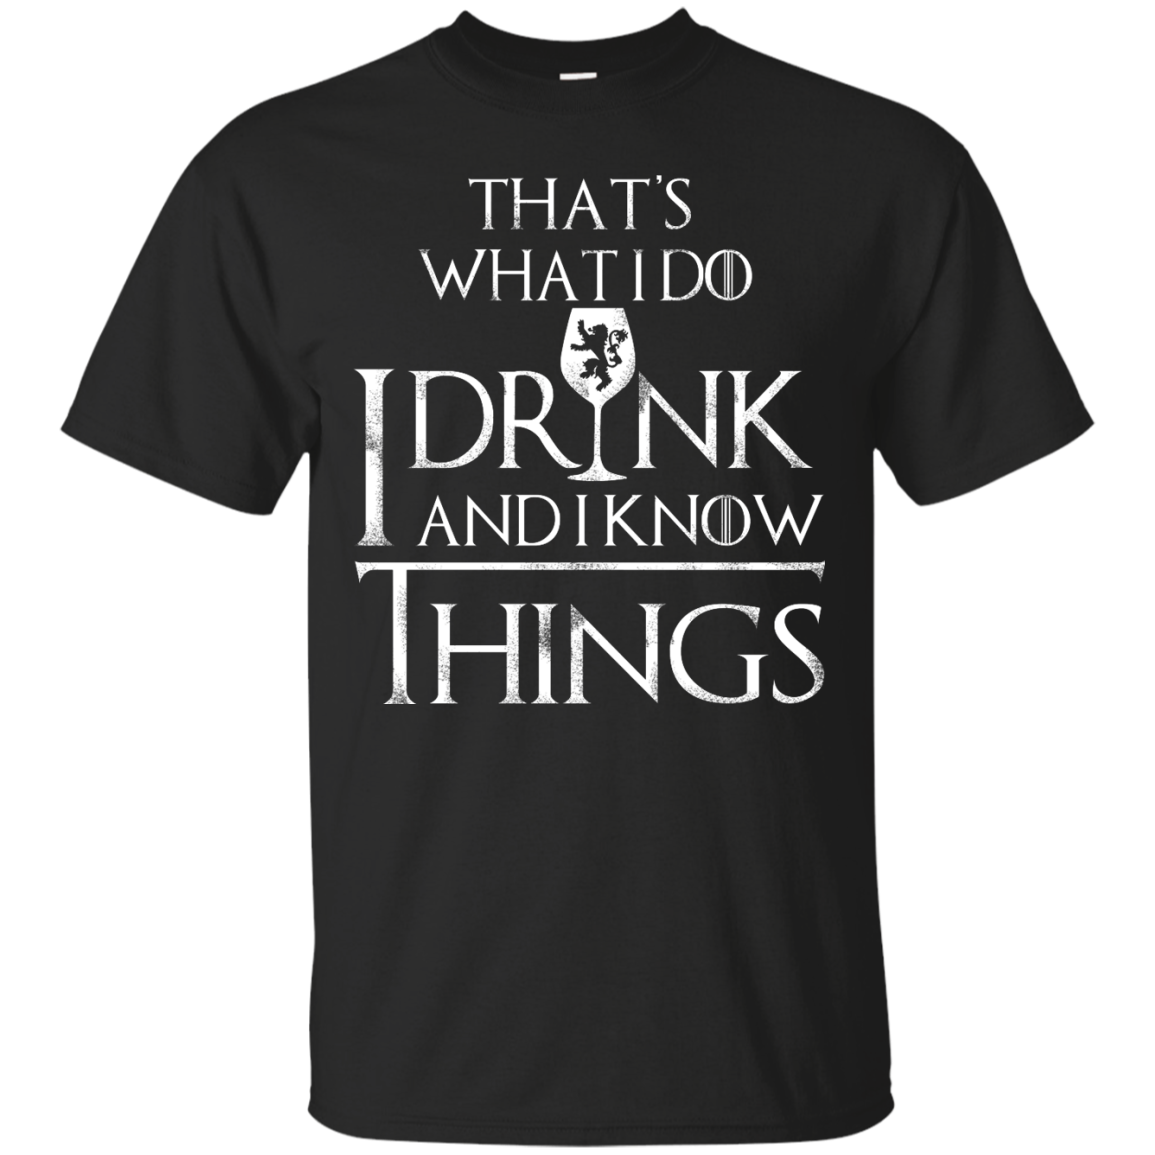 I Drink and I Know Things W T Shirt, Hoodies